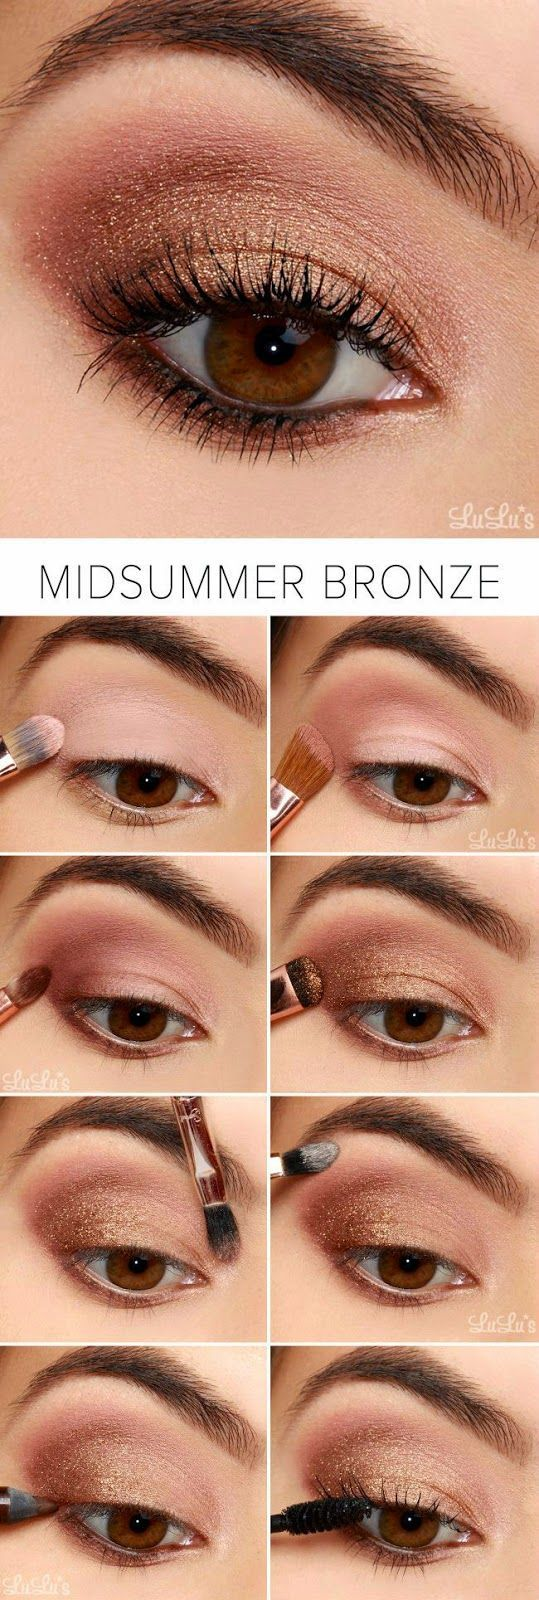 Latest Summer Makeup Ideas & Trends 2016-2017 Beauty Tips | StylesGap.com